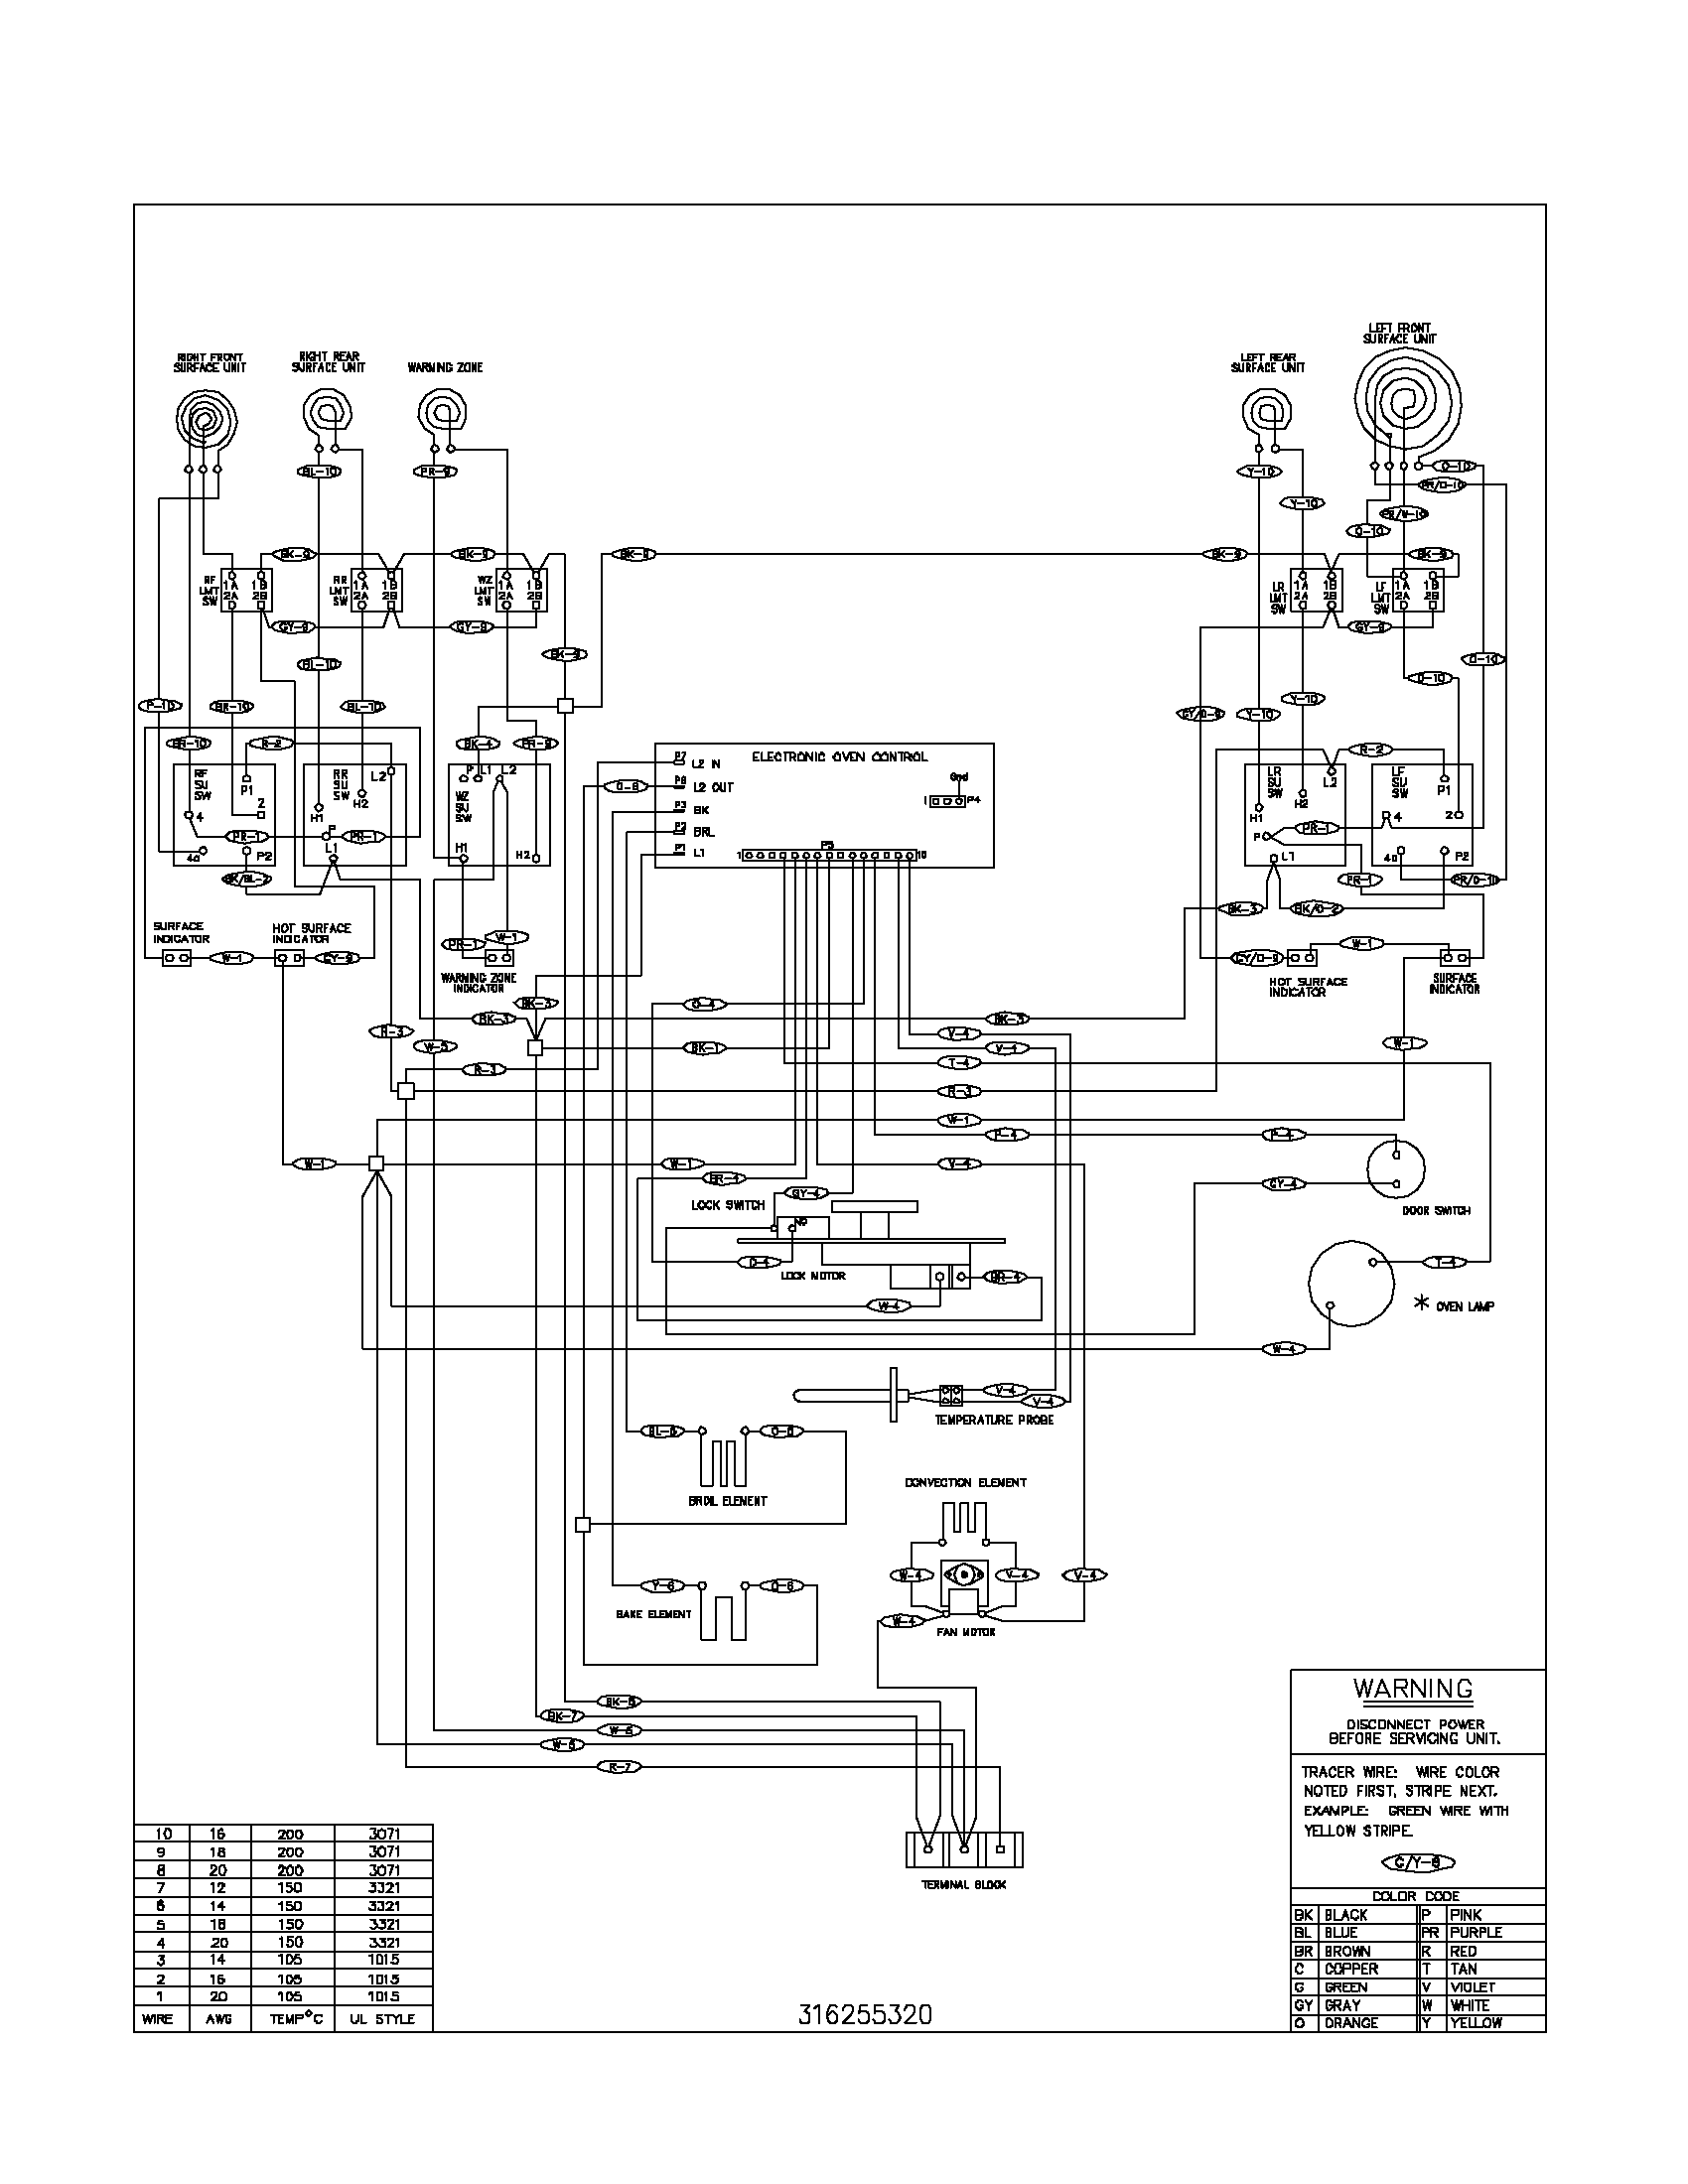 wiring diagram parts ge monogram oven wiring diagram on ge download wirning diagrams ge refrigerator ice maker wiring diagram at panicattacktreatment.co